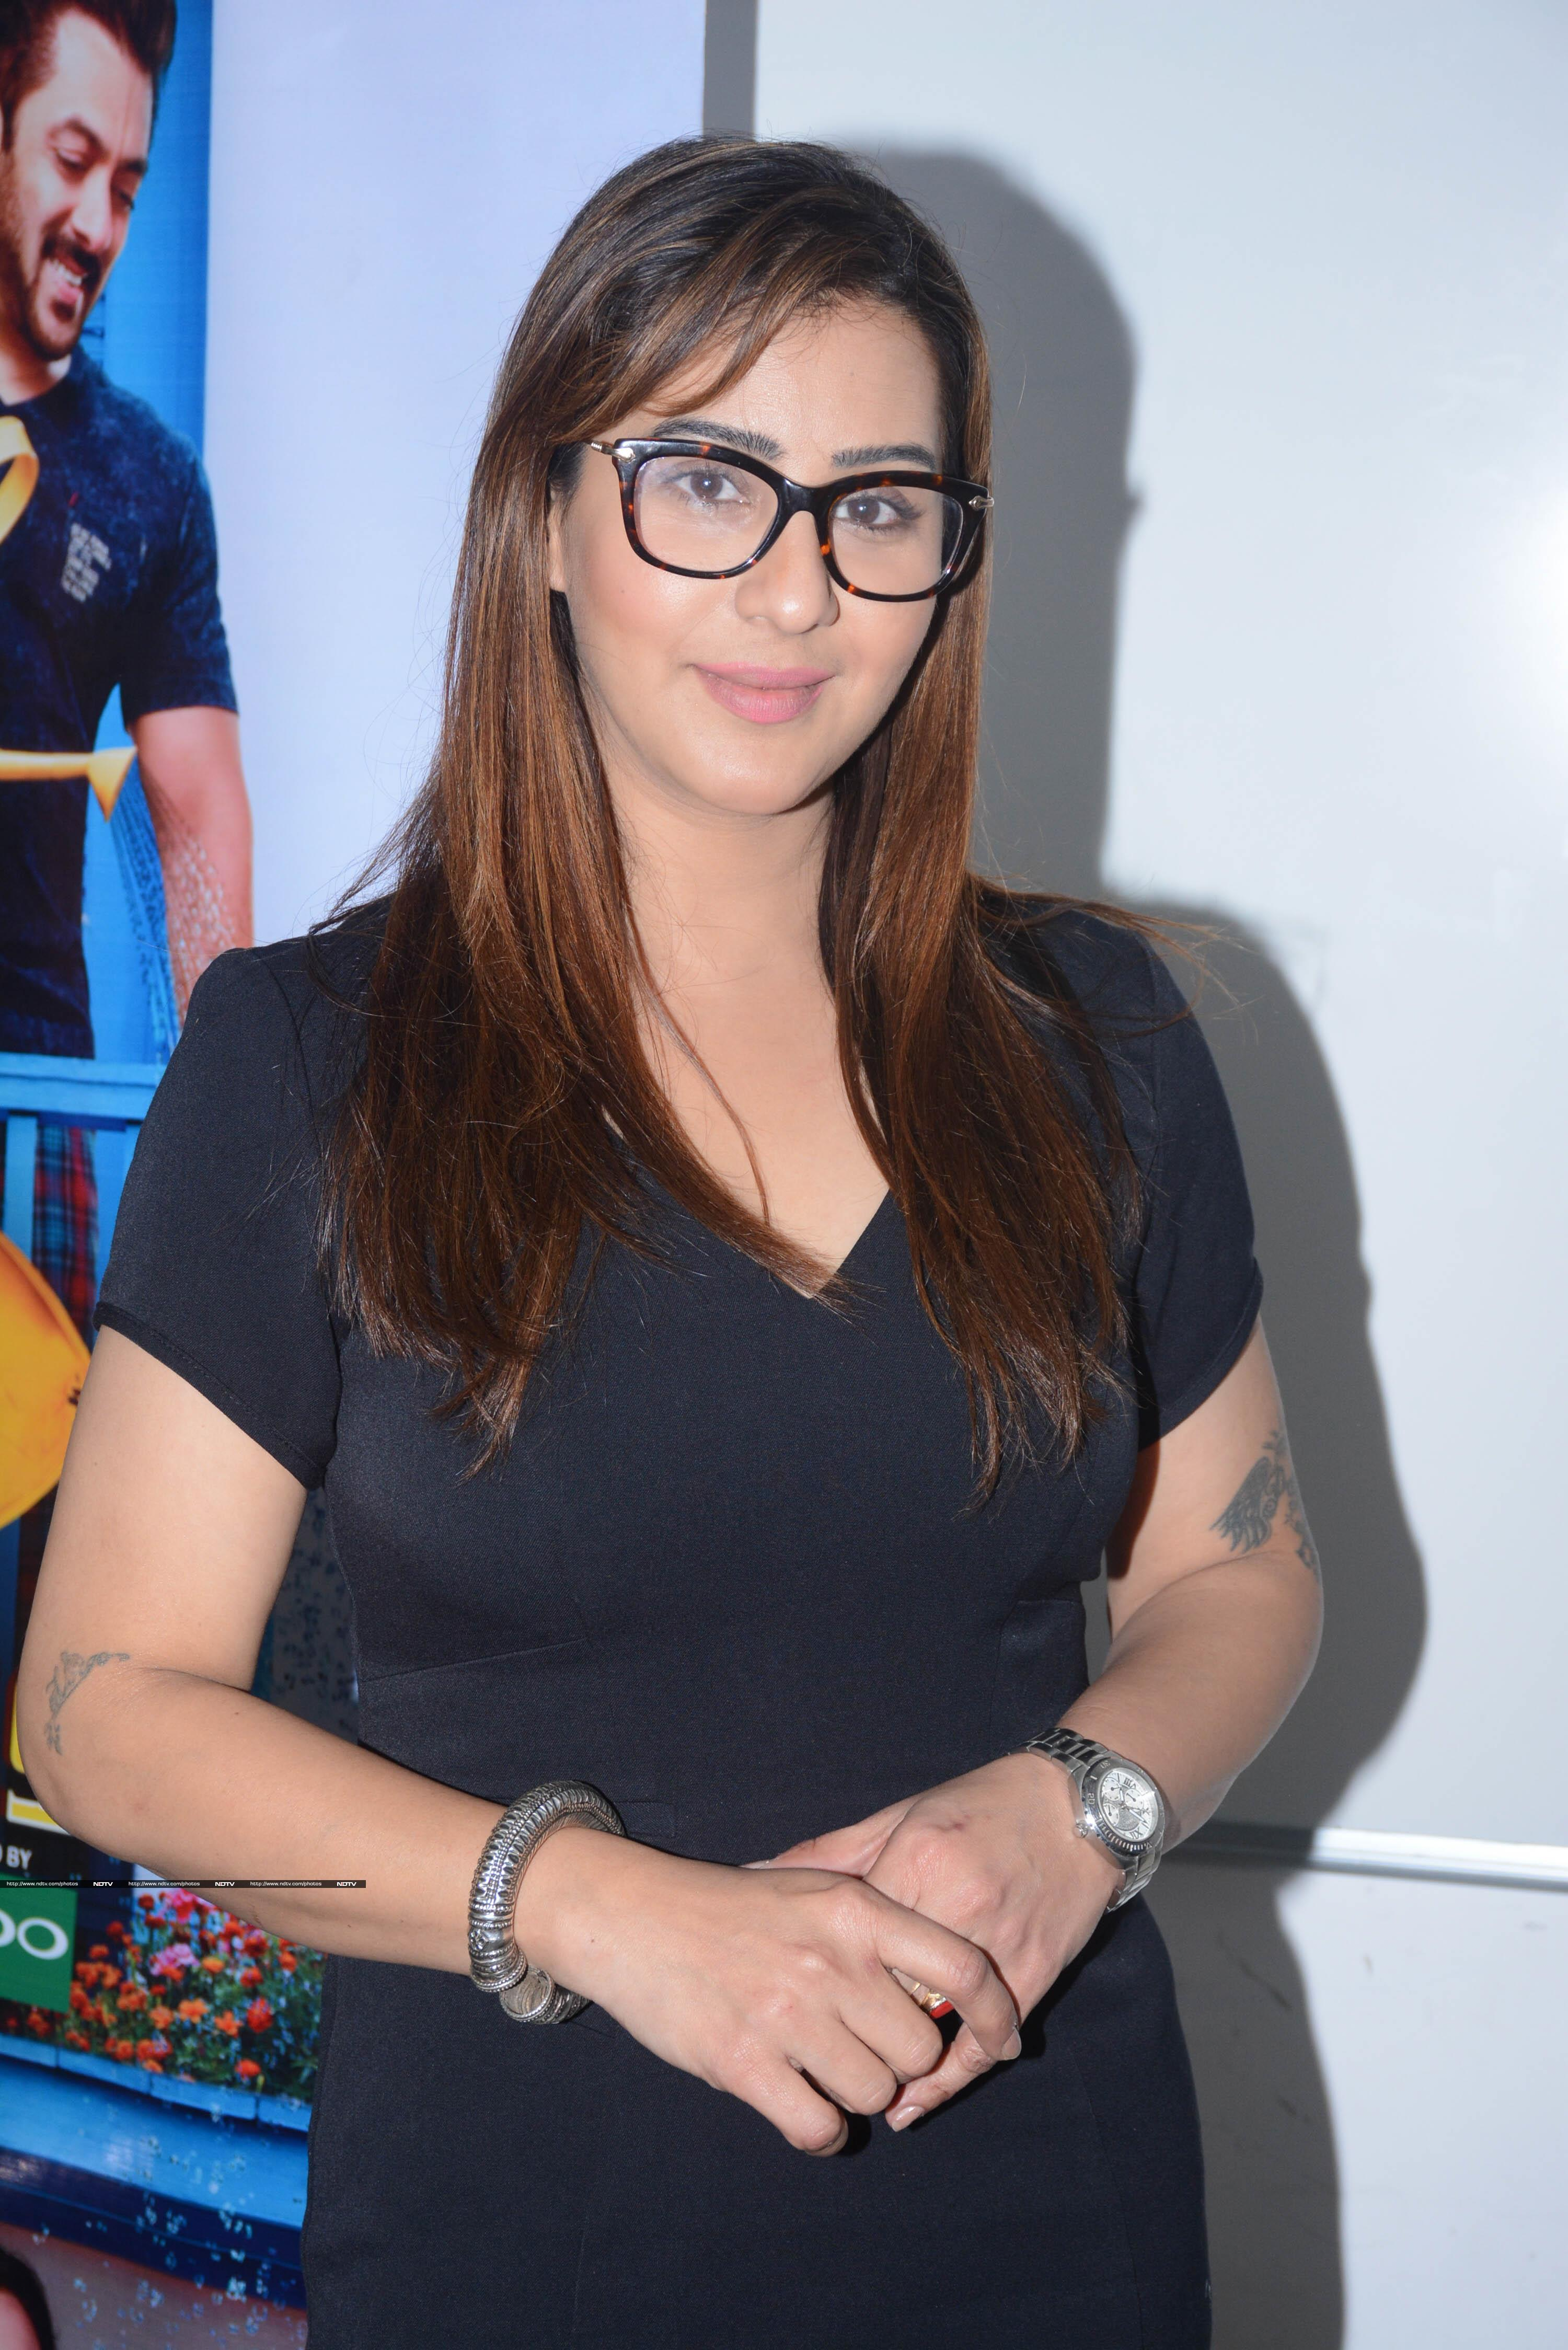 Bigg Boss 11 Winner Shilpa Shinde, A Day After The Finale